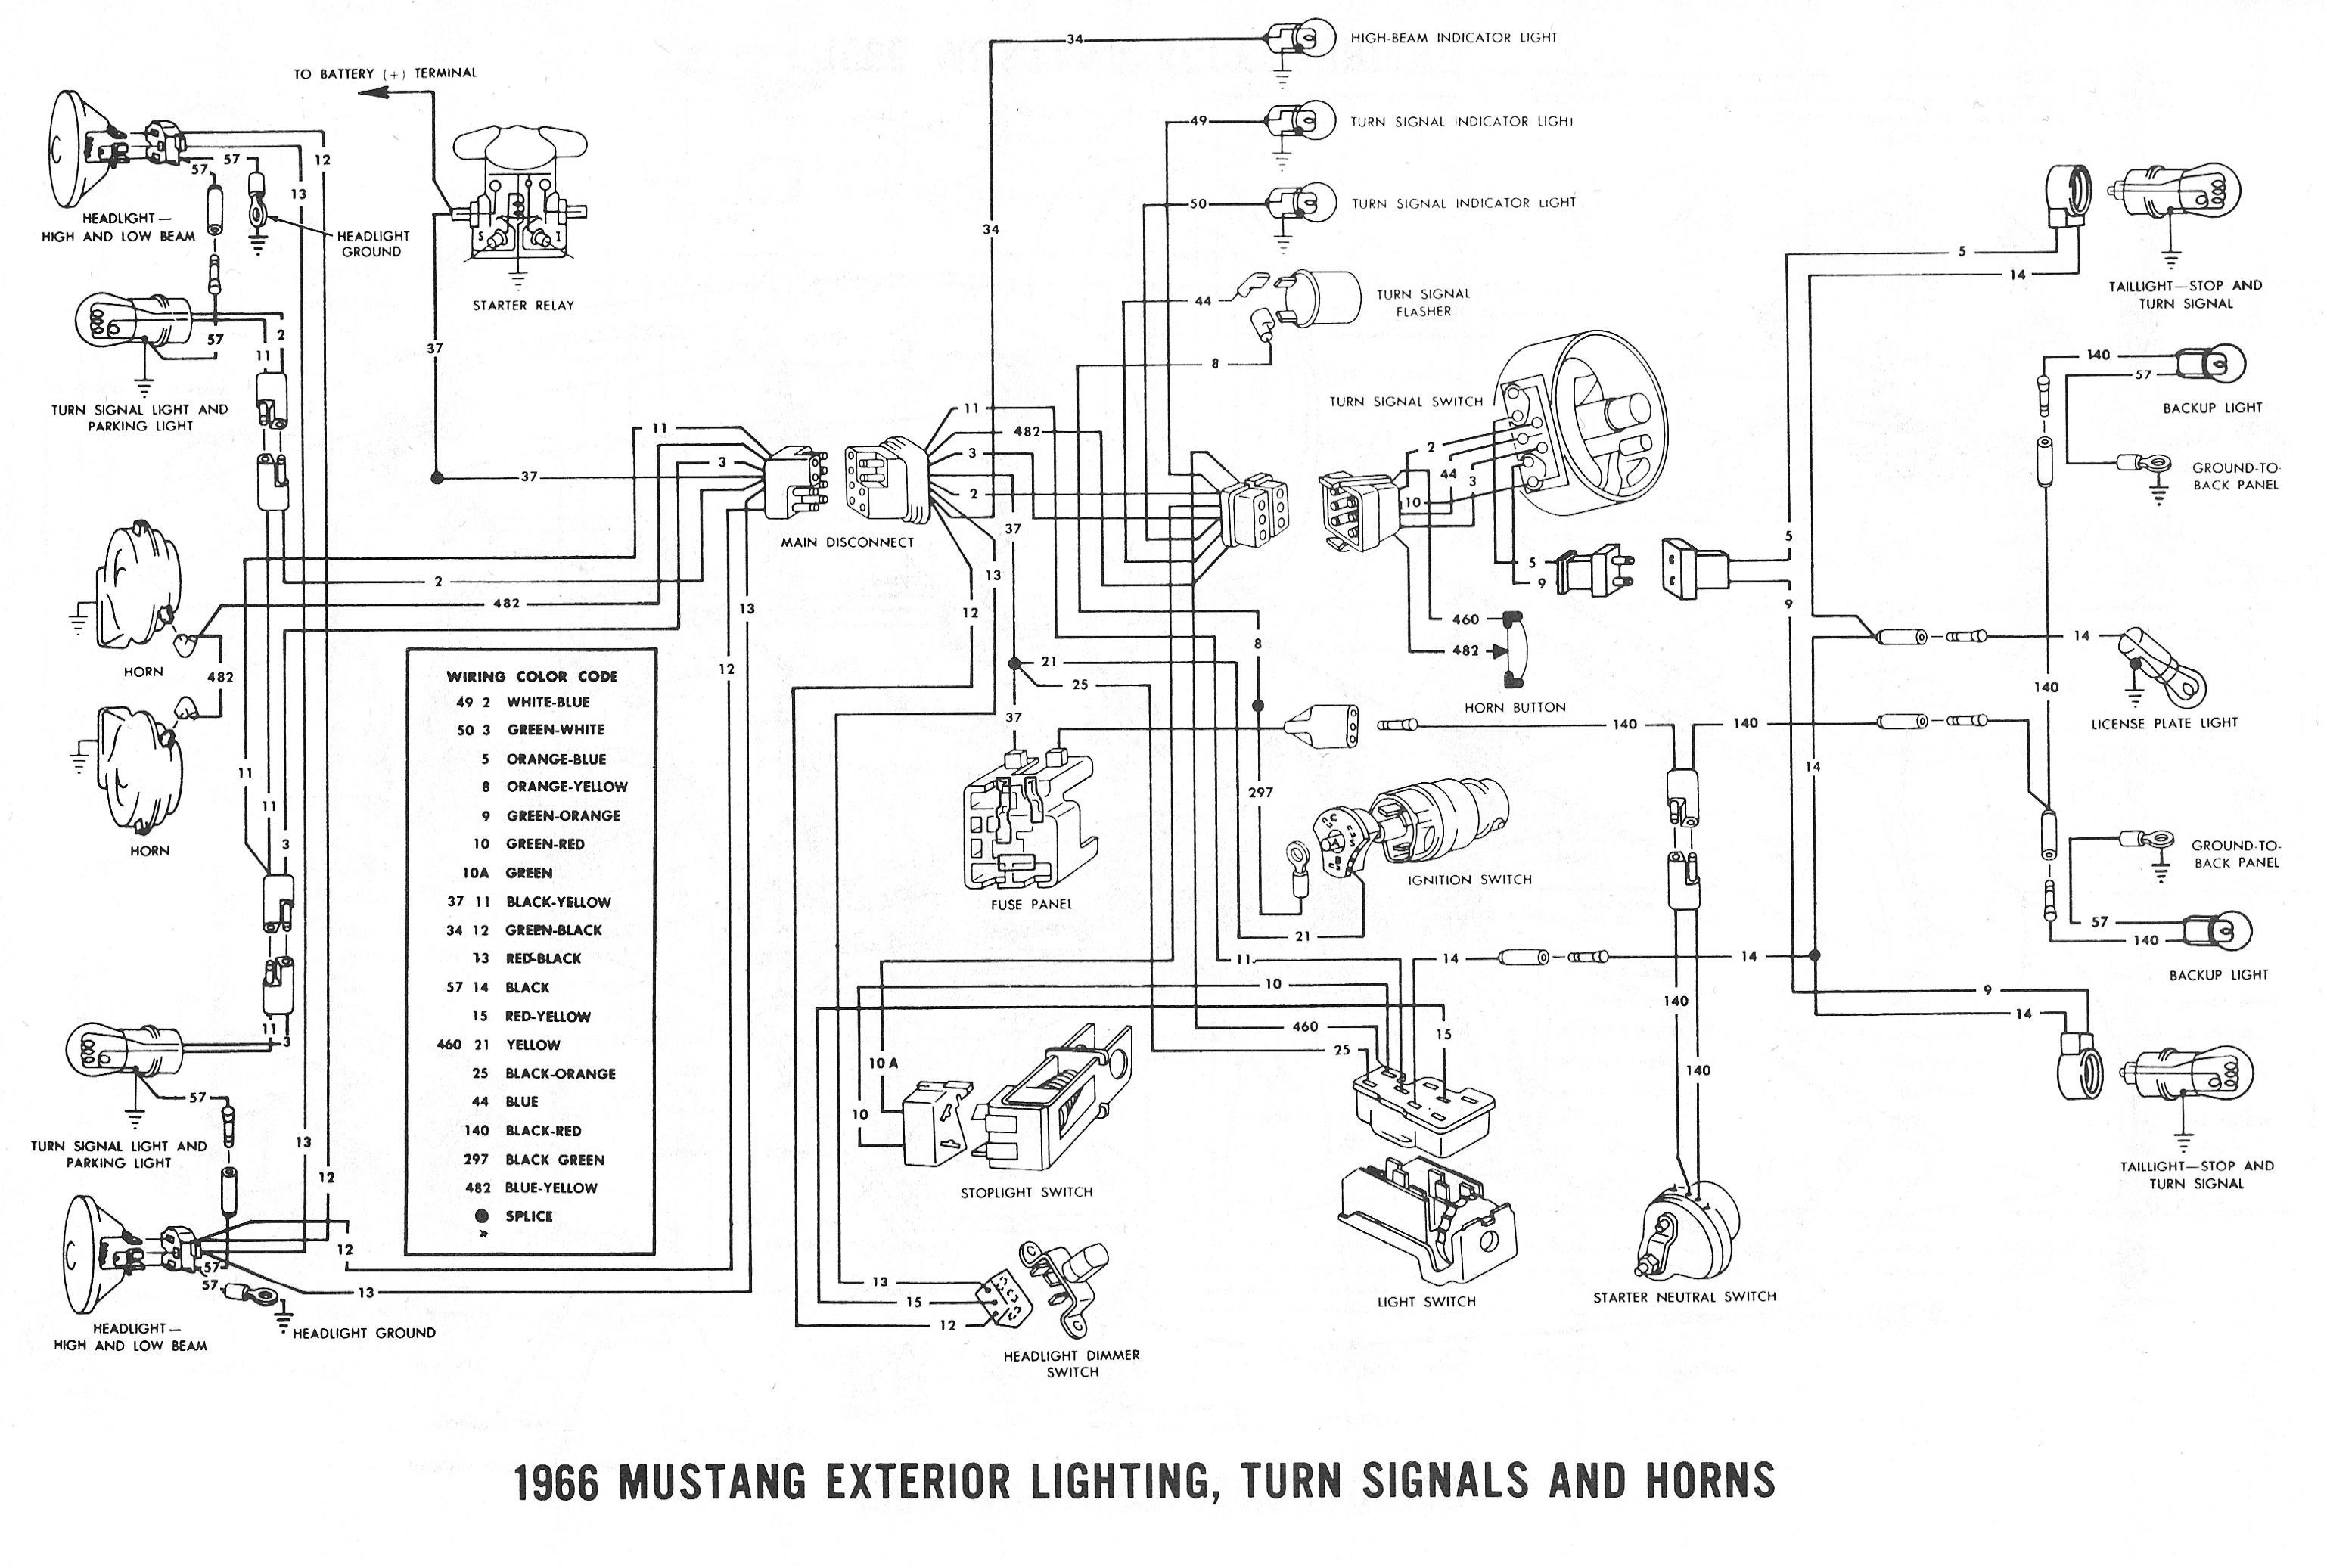 Vw Touareg Engine Diagram Audi Q7 Fuel Pressure And Trailer Wiring Related Post